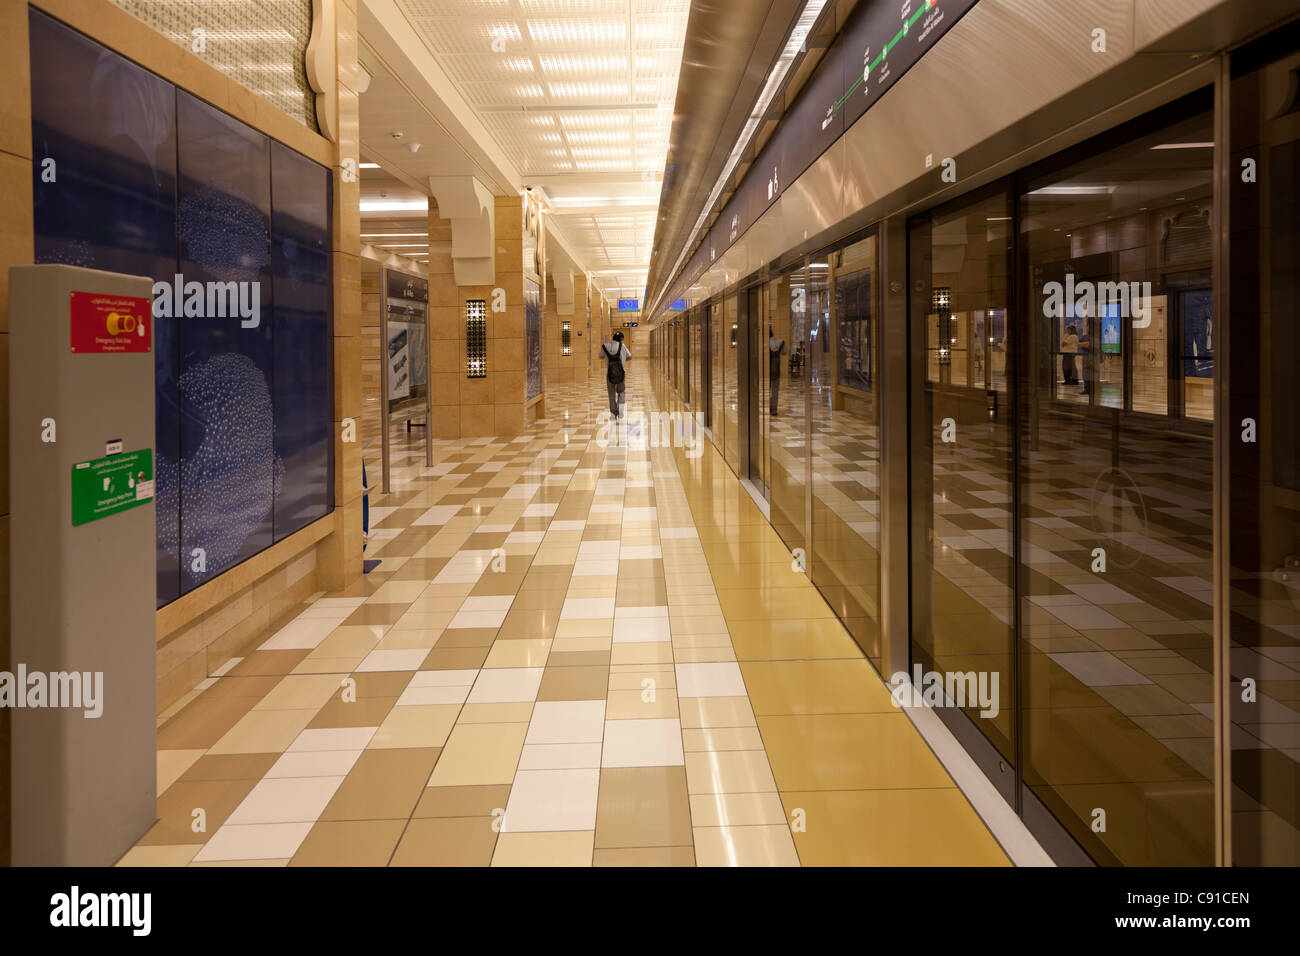 Subway station in Dubai city - Stock Image